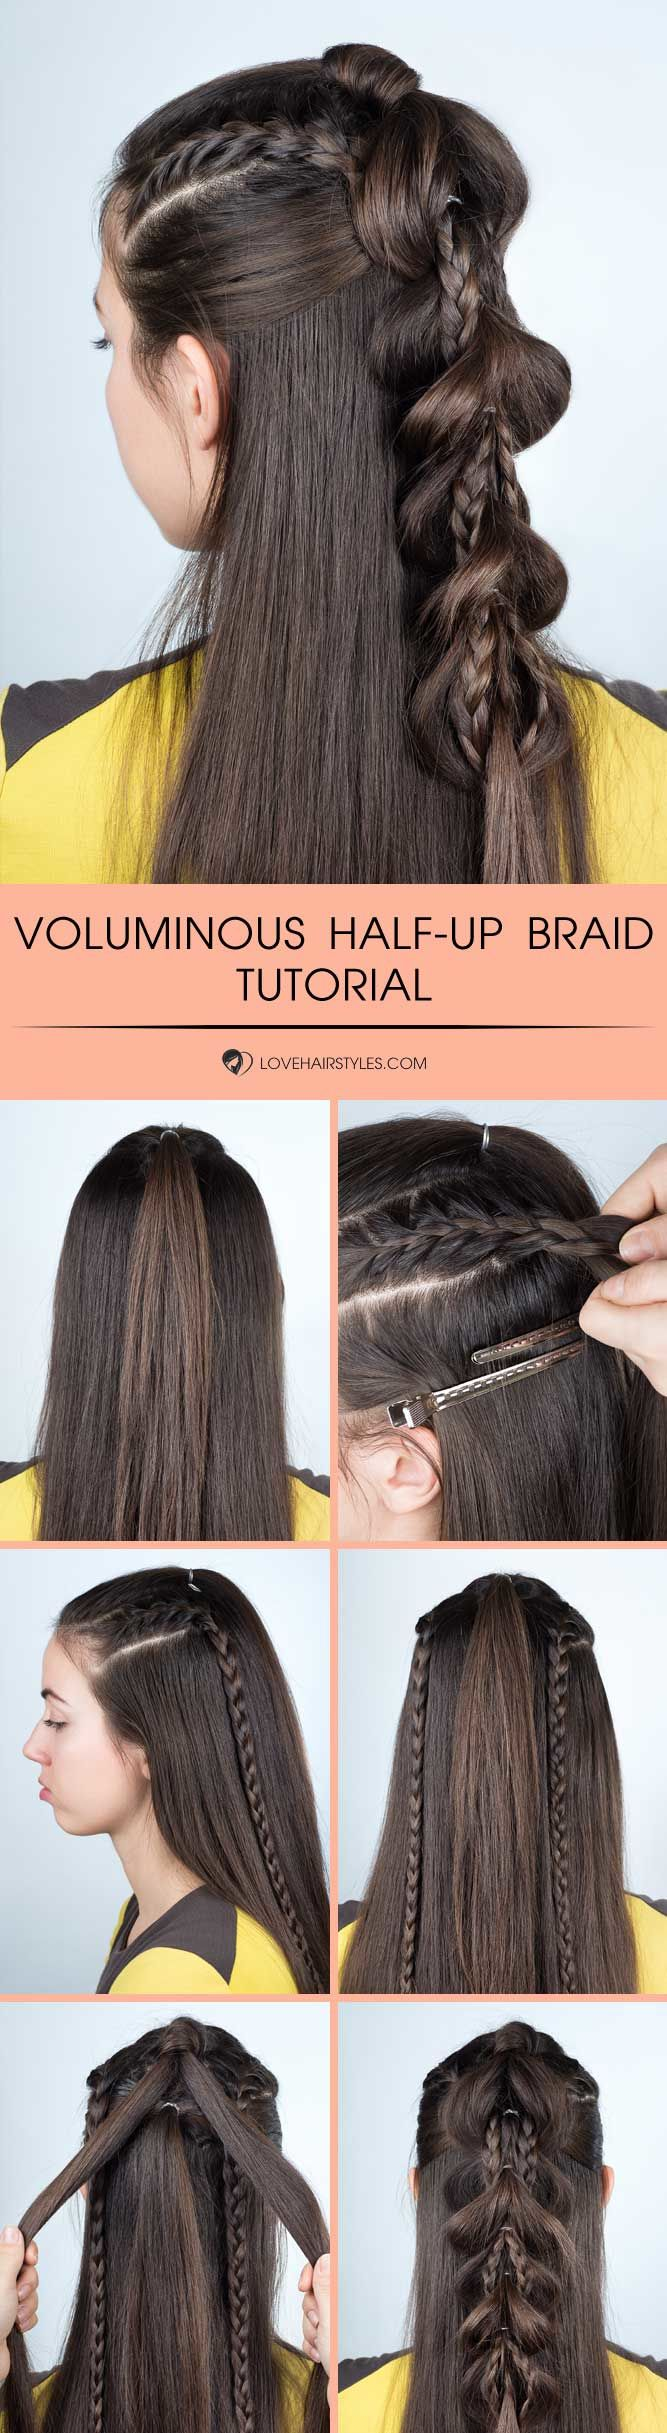 Voluminous Half Up Braid #braids #hairtutorial